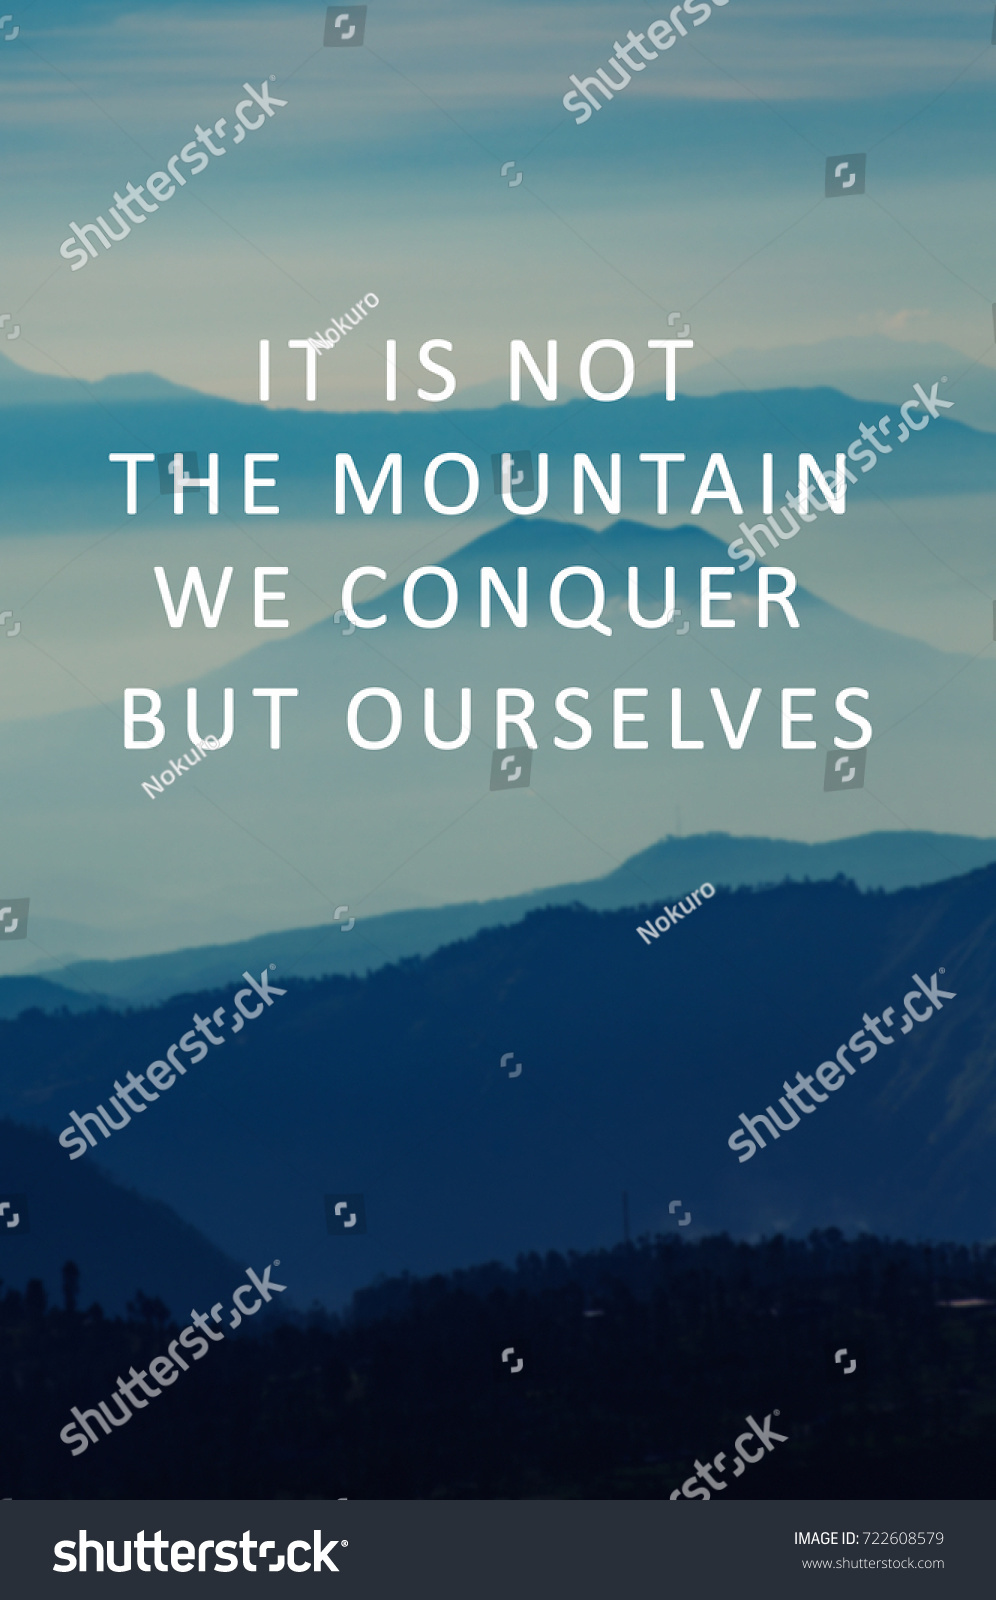 Motivational Inspirational Quotes About Life Life Motivational Inspirational Quotes Not Mountain Stock Photo